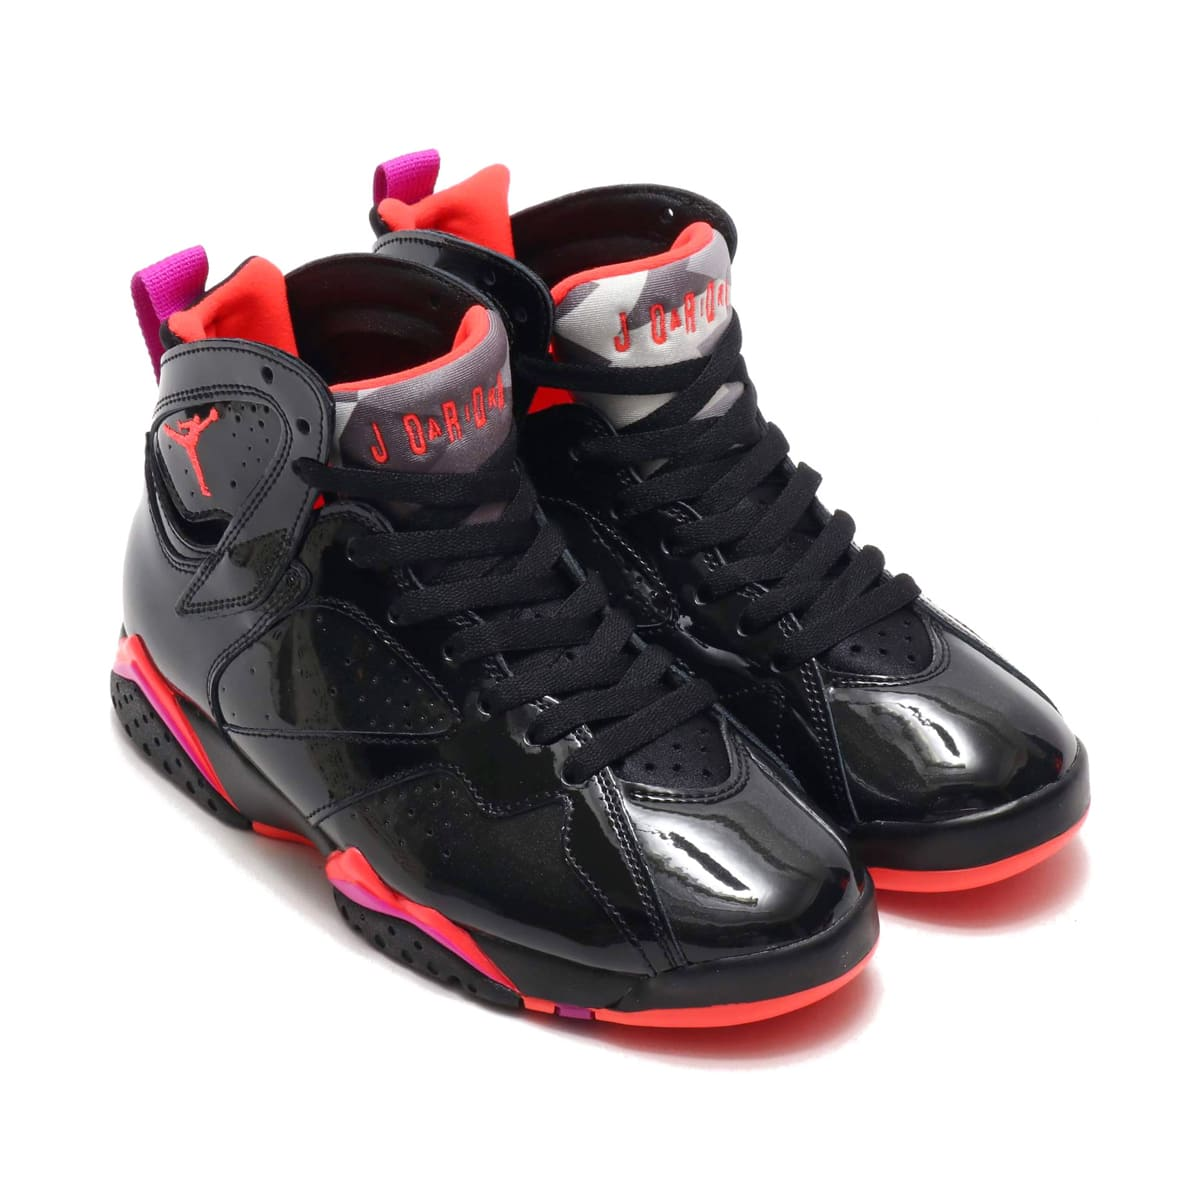 NIKE WMNS AIR JORDAN 7 RETRO BLACK/BRIGHT CRIMSON-ANTHRACITE 19HO-S_photo_large